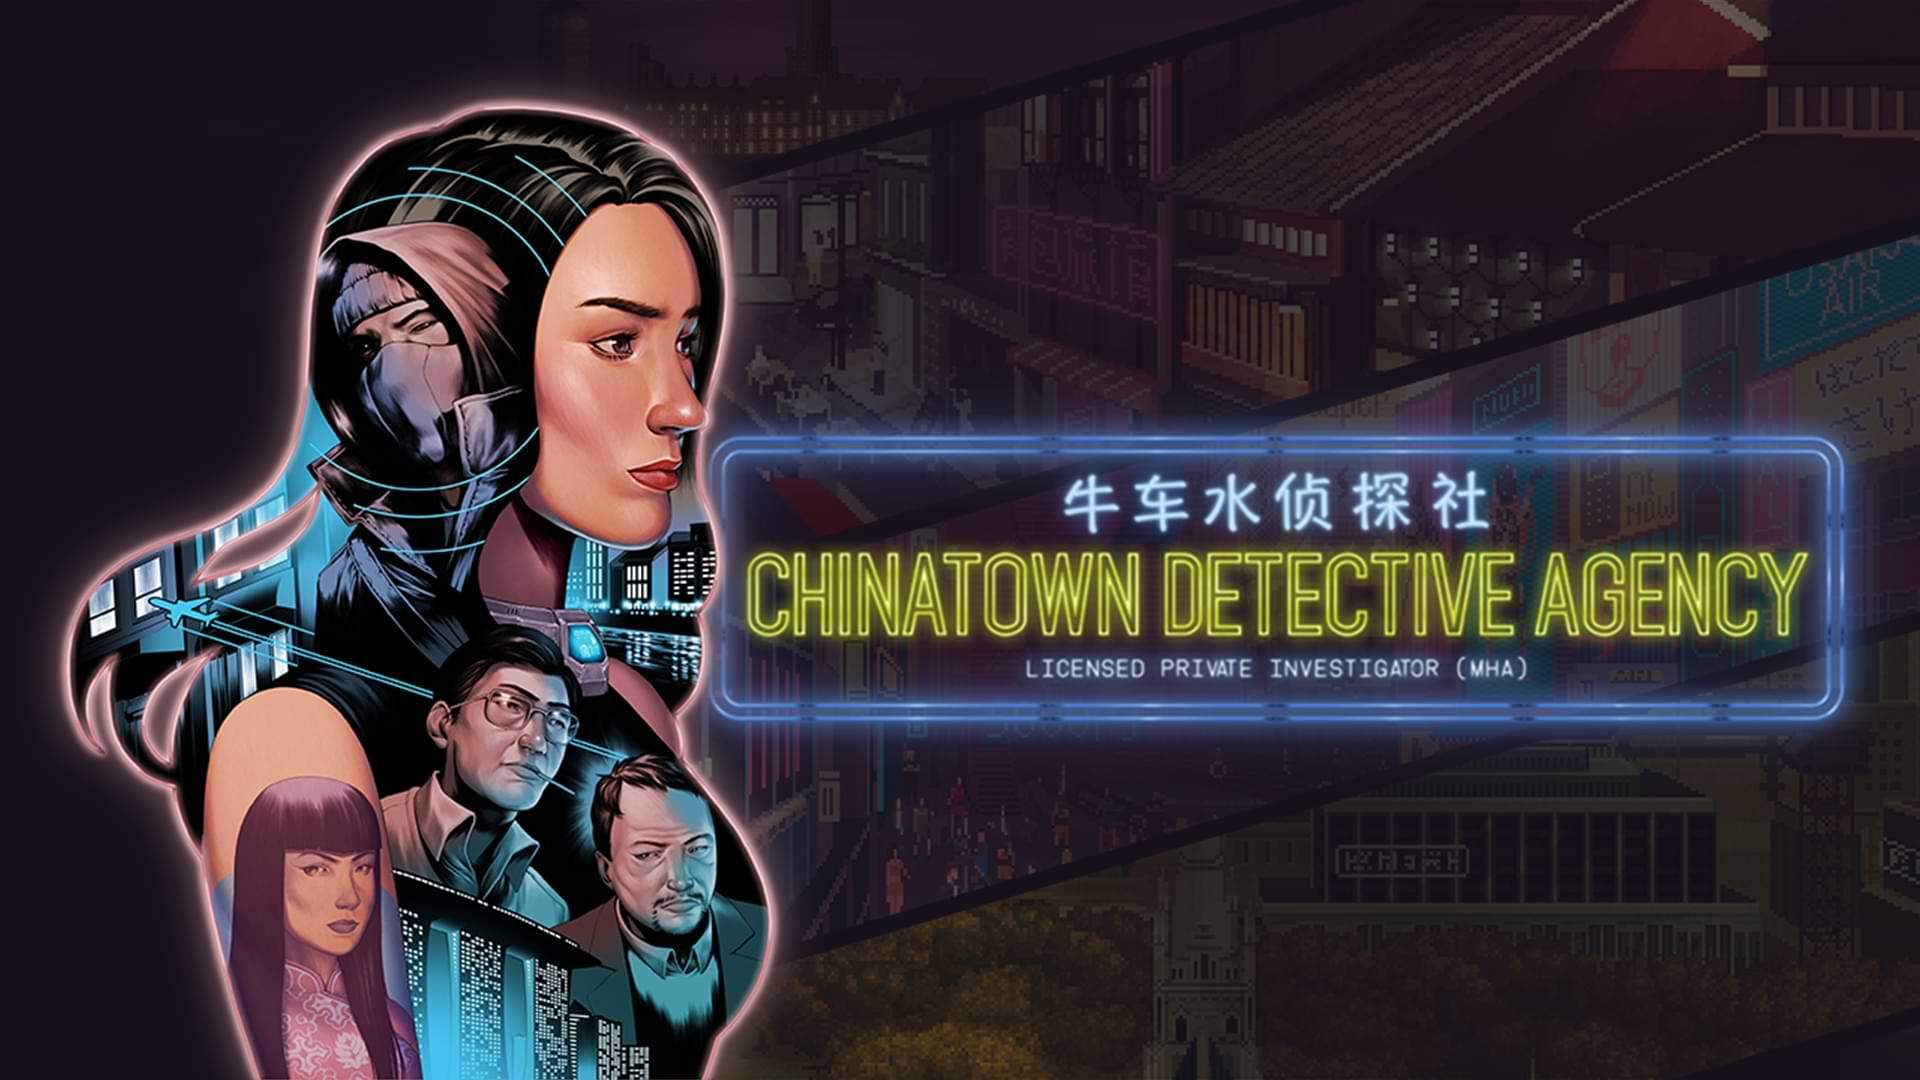 Chinatown Detective Agency Day One demo out now